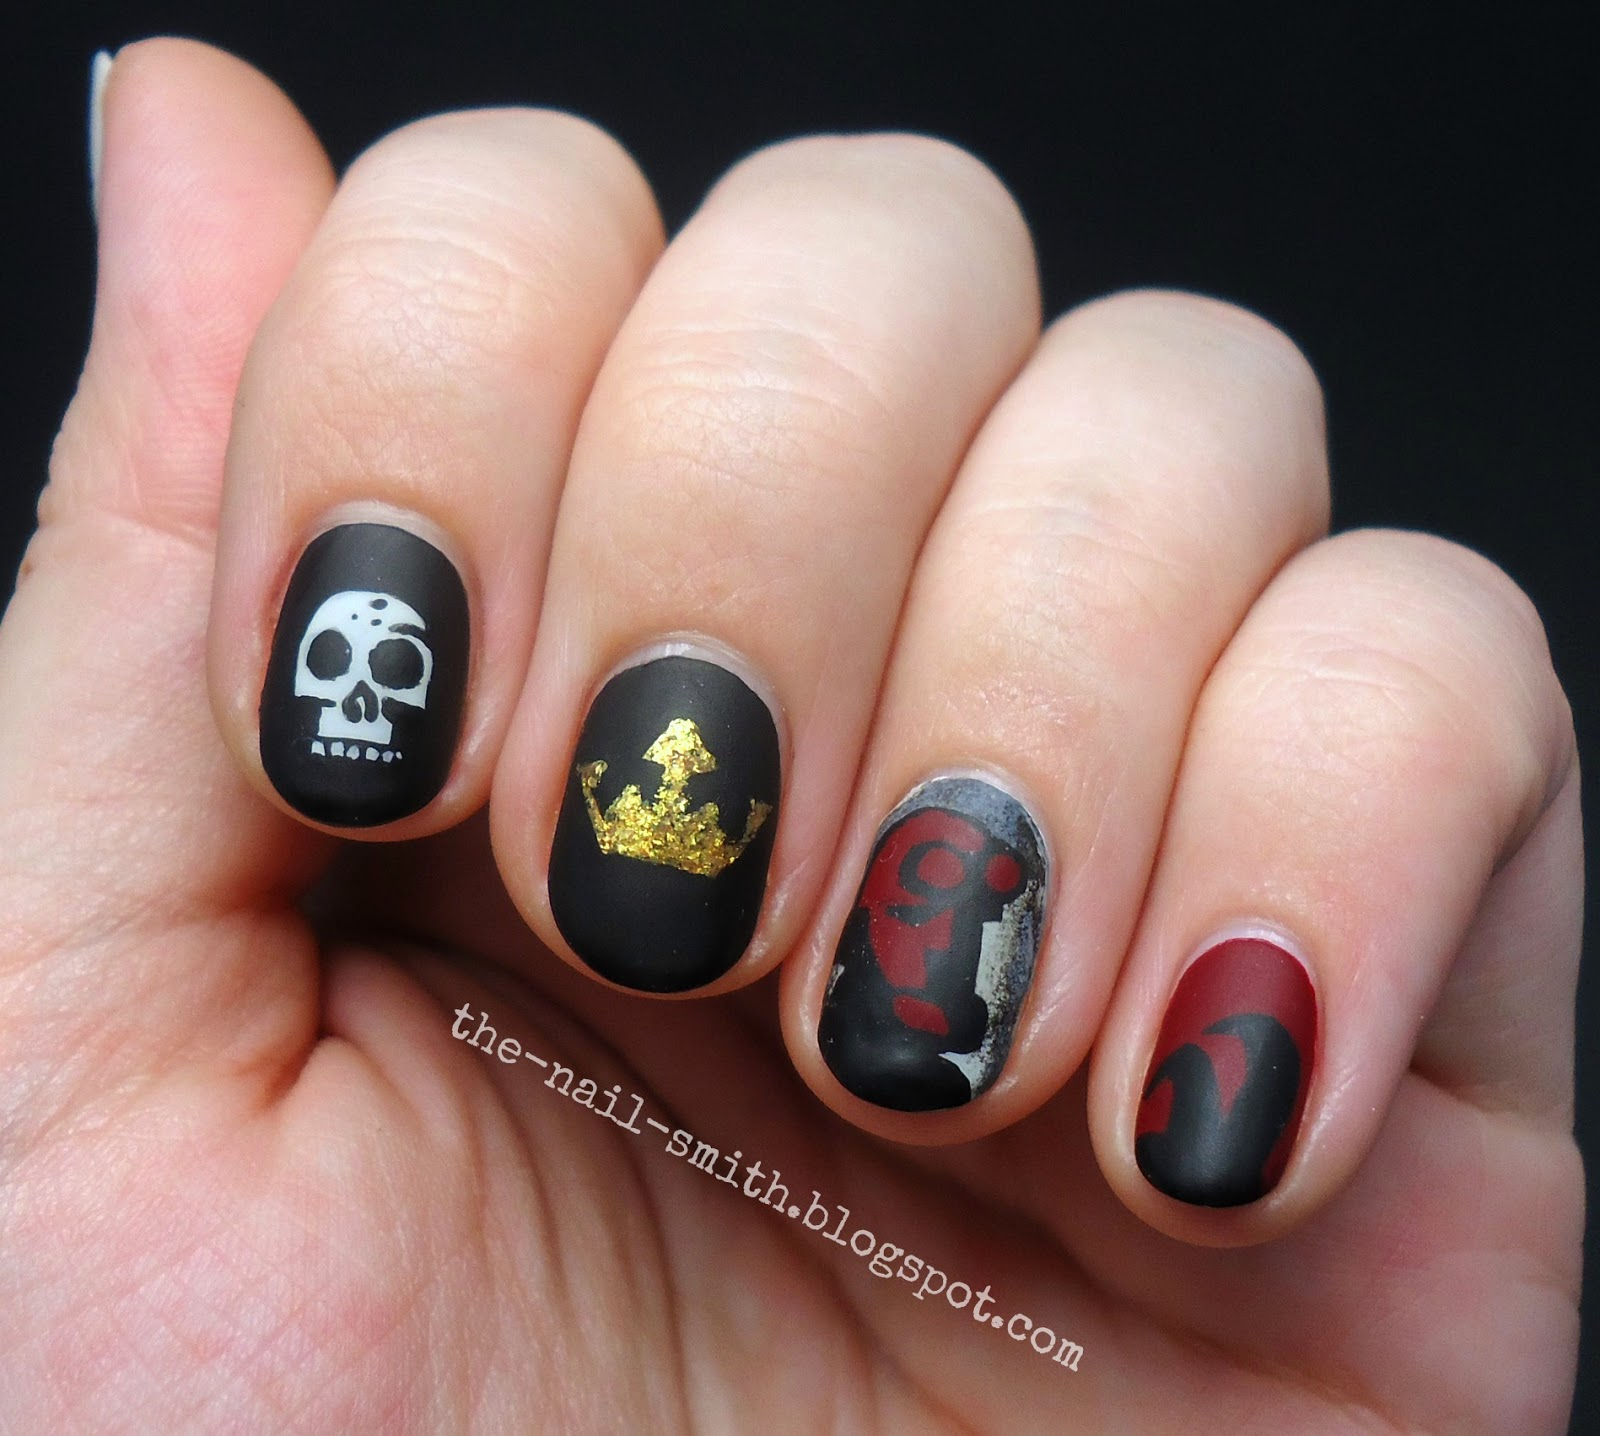 The nail smith hellboy homage twin post okay finally we get to the nail art after a base coat to protect my nails i painted the base colors on each of my nails maybelline bare escape on thumb prinsesfo Images